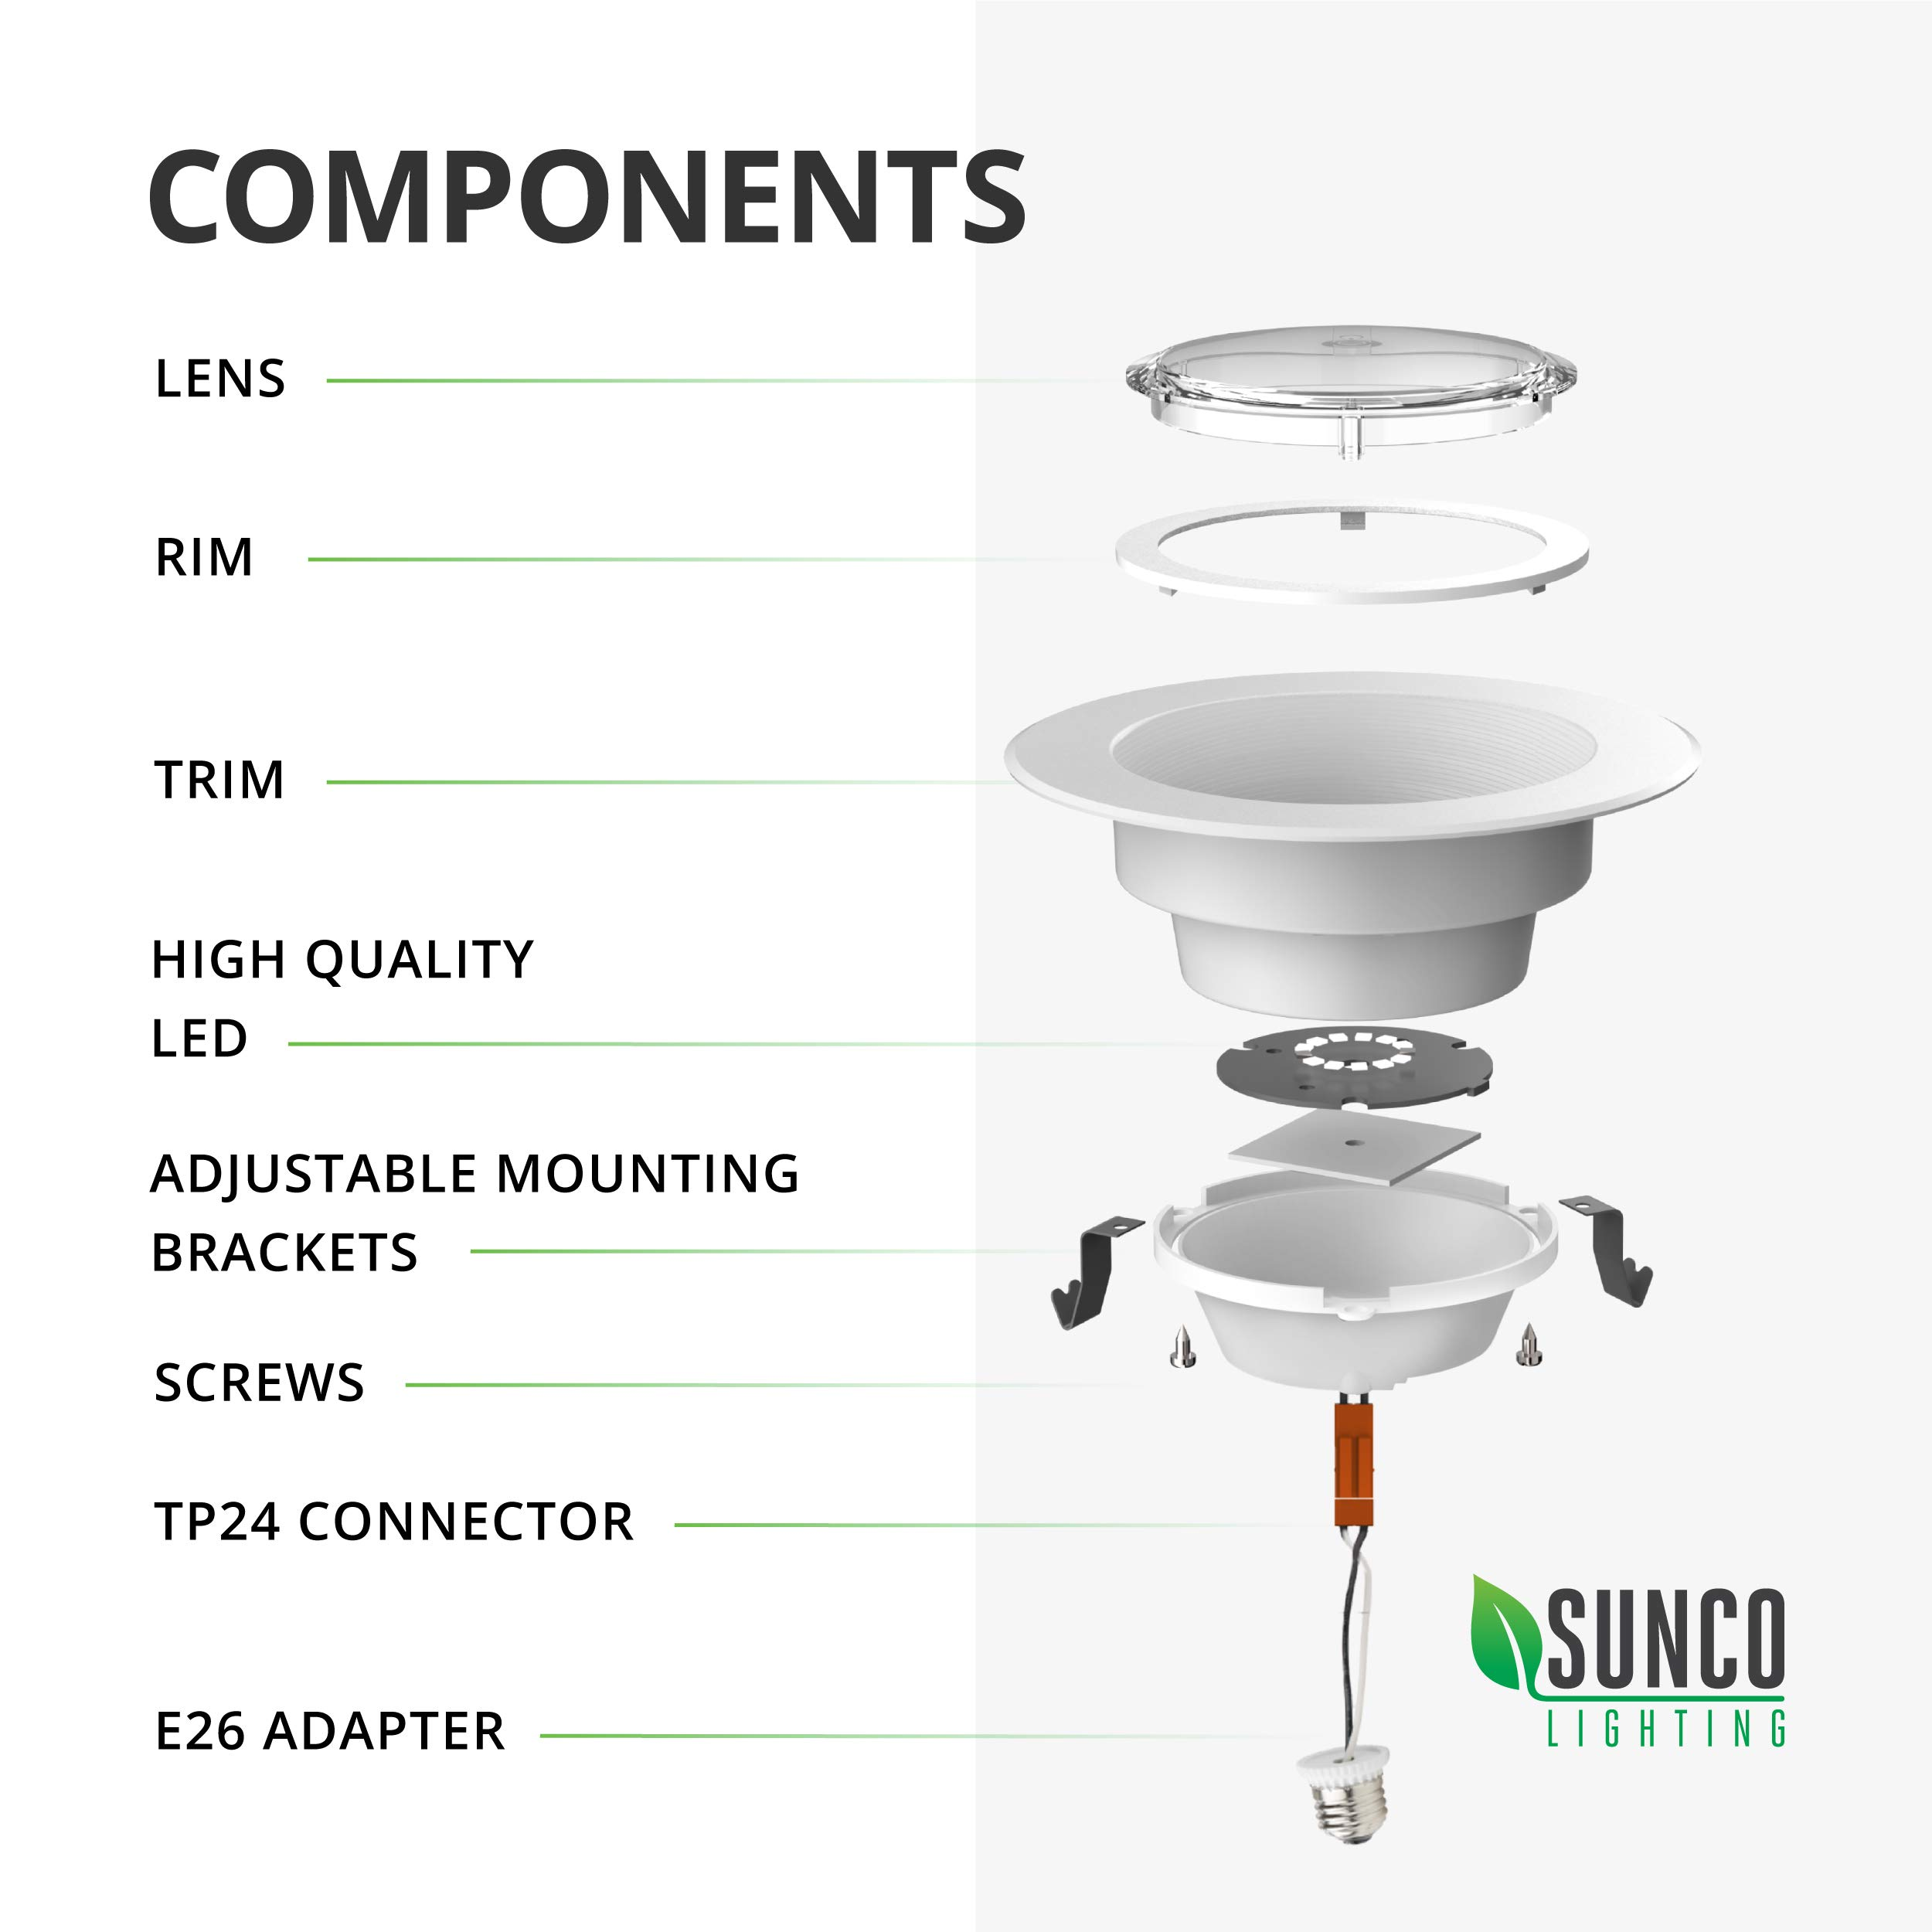 Sunco Lighting 10 Pack 4 Inch Baffle Recessed Retrofit Kit Dimmable LED Light, 11W (40W Replacement), 5000K Kelvin Daylight, Quick/Easy Can Install, 660 Lumen, Wet Rated by Sunco Lighting (Image #11)